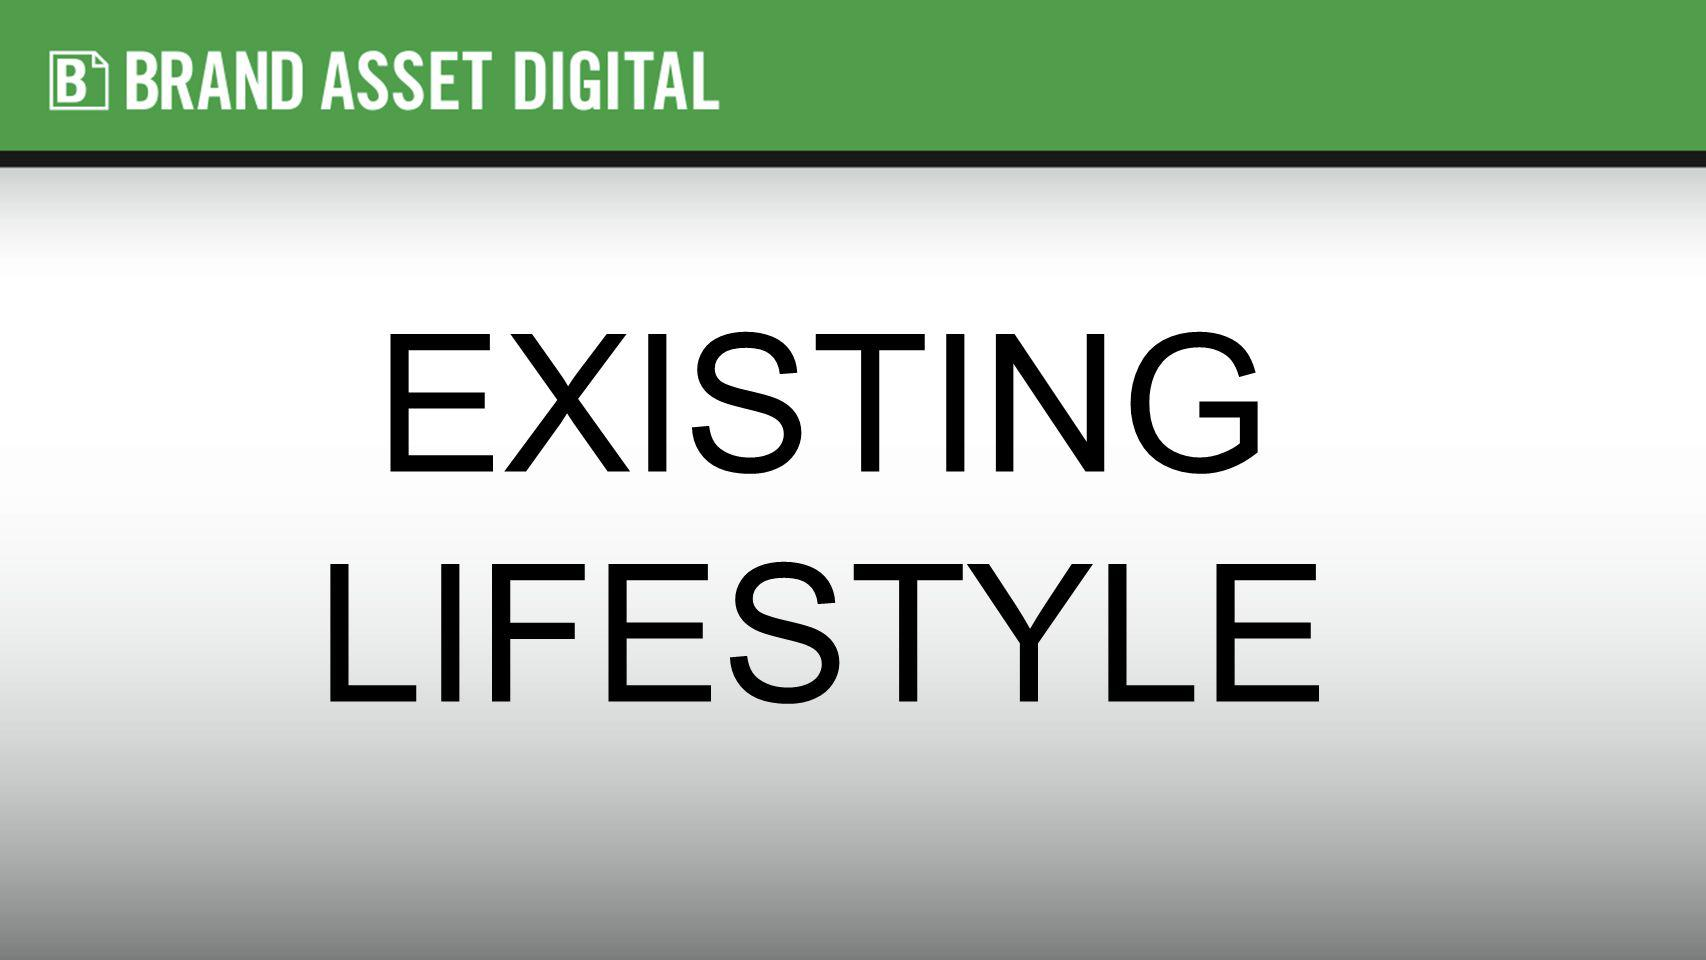 EXISTING LIFESTYLE